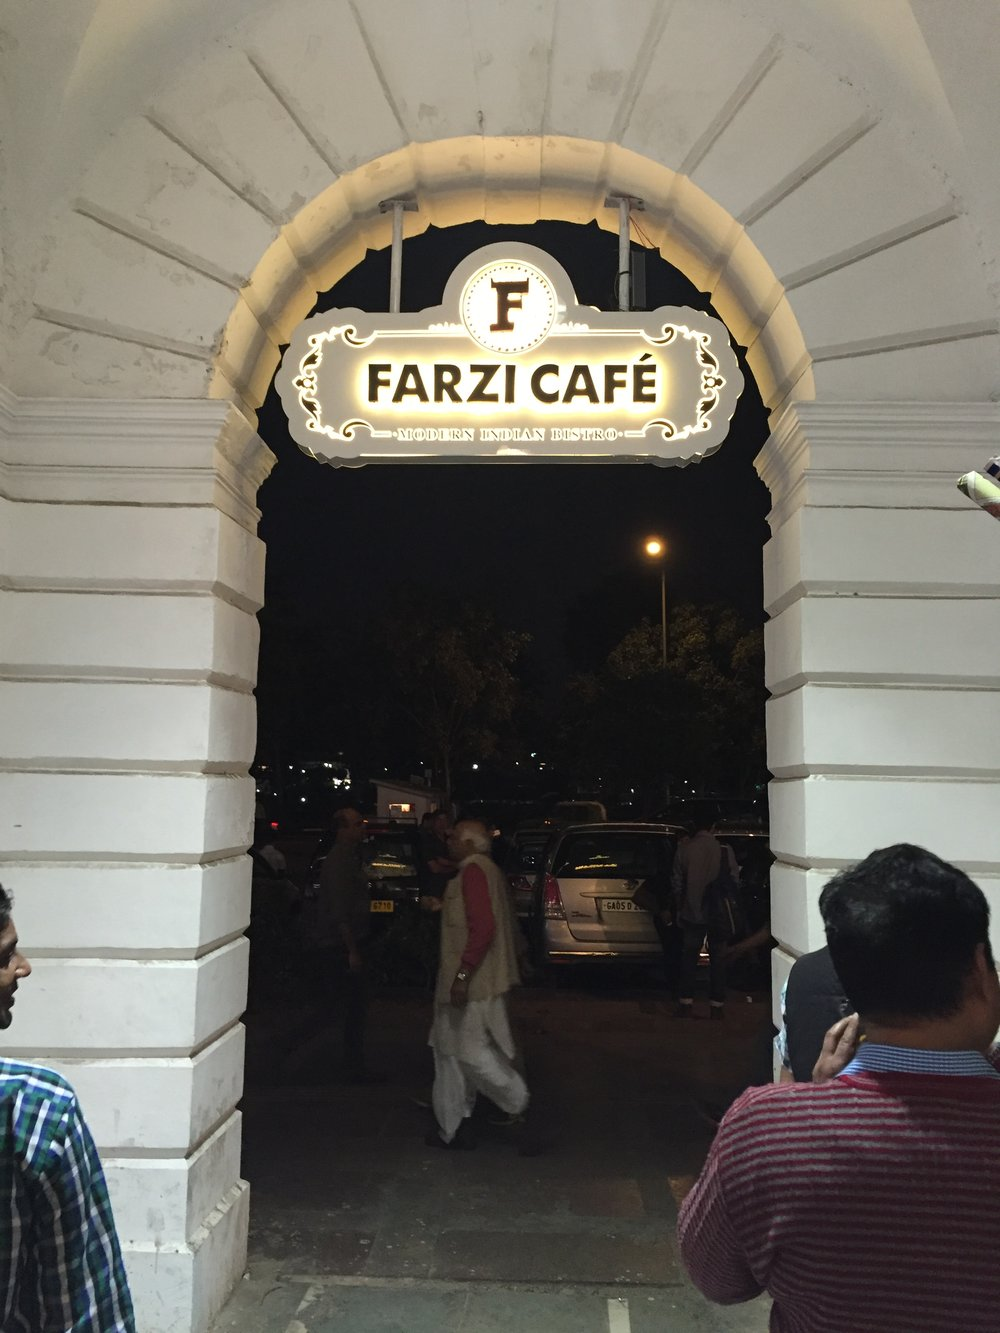 Farzi Cafe at Delhi's Connaught Place.